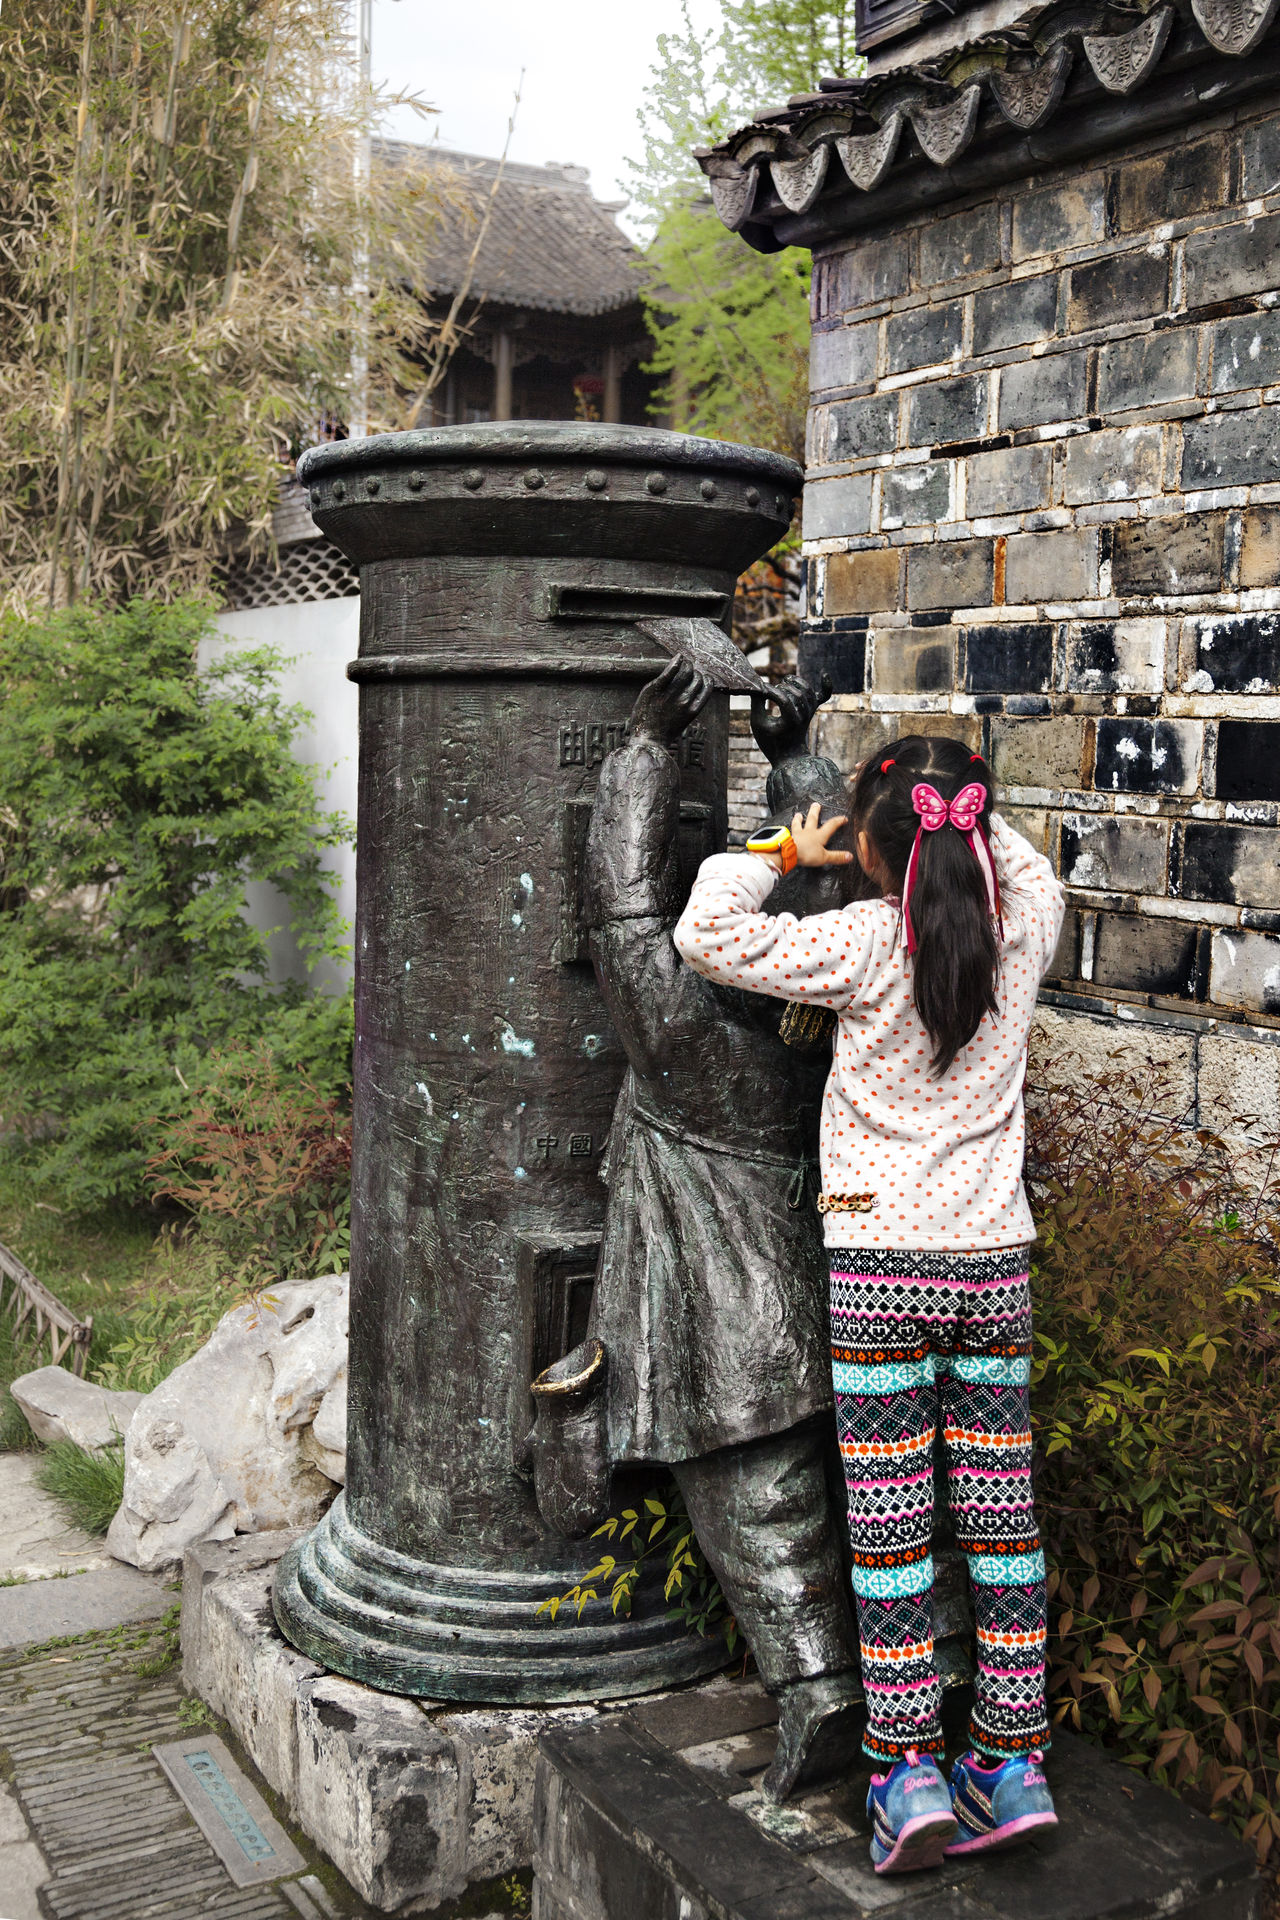 I will help you -Roadside sculpture and girl Mailbox Roadside Sculpture Architecture Built Structure City City Life Day Girl I Help You Leisure Activity Lifestyles My Commute Outdoors Sculpture To Send